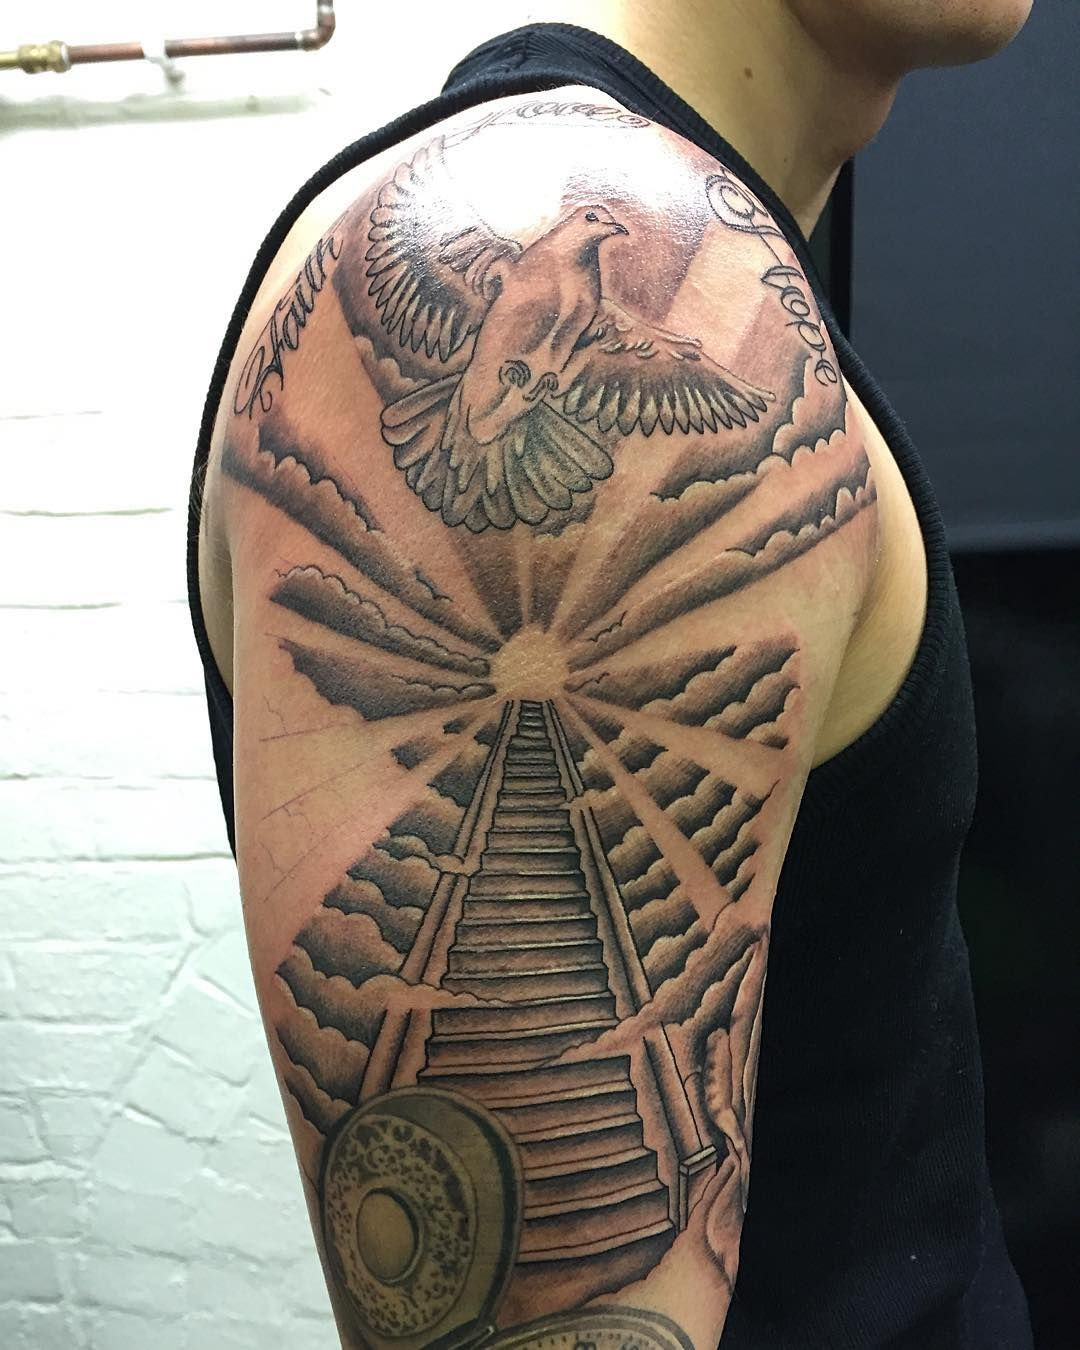 To Heaven Tattoo Sleeve Stairway To Heaven Tattoo Venice Tattoo